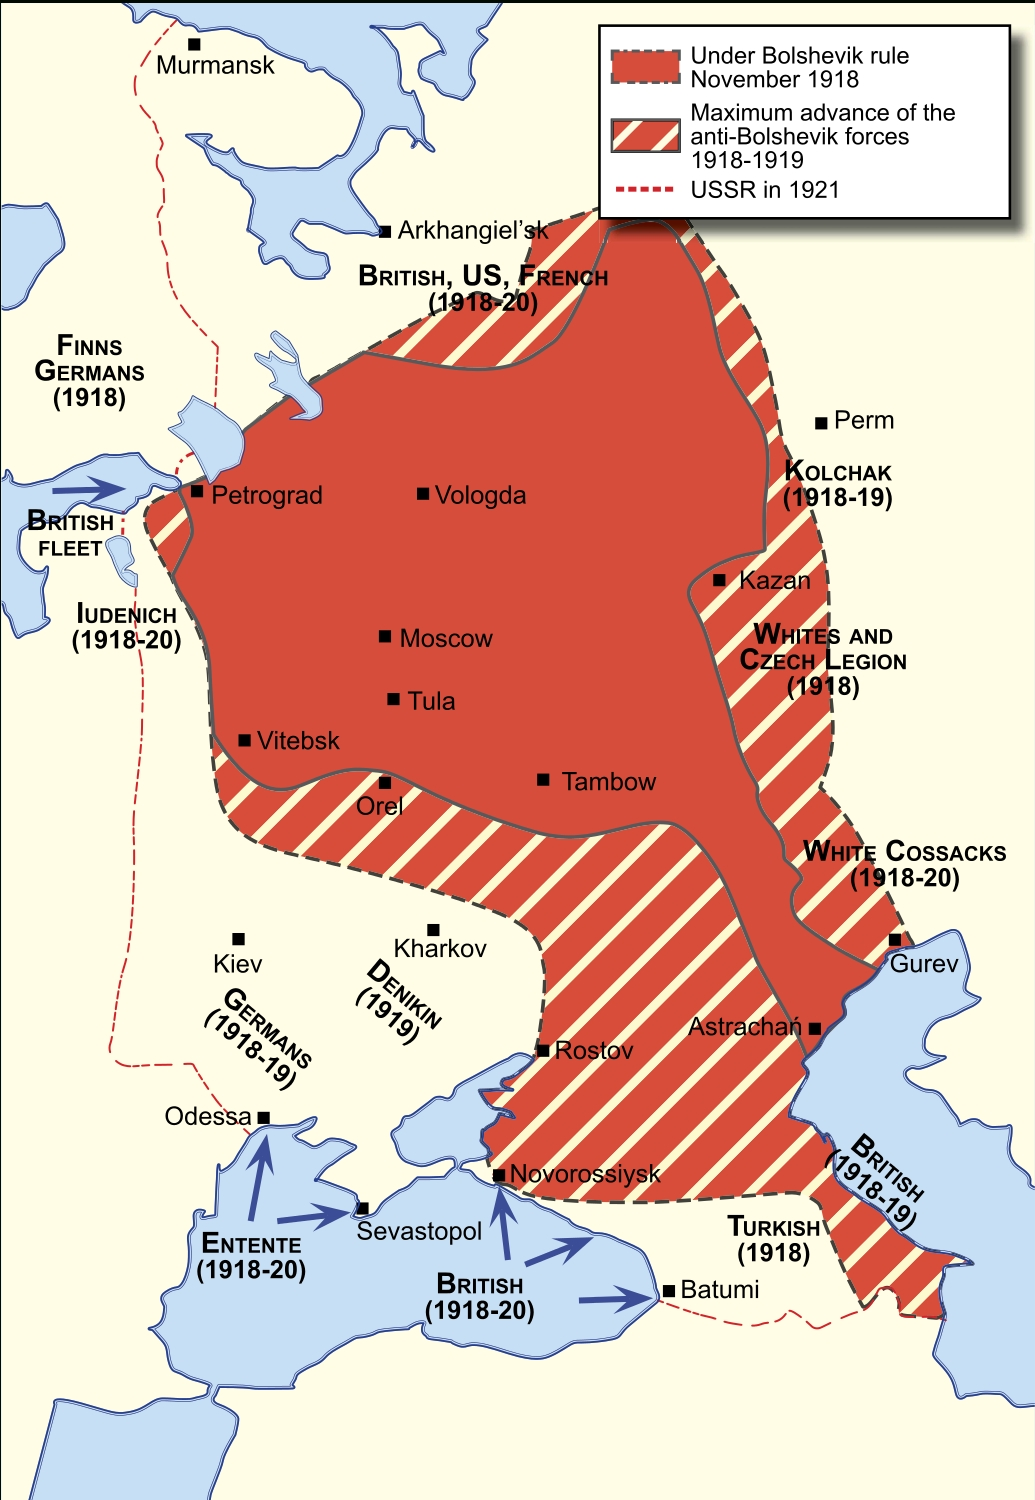 40 Maps That Explain World War I | Vox with Germany Map In World War 1